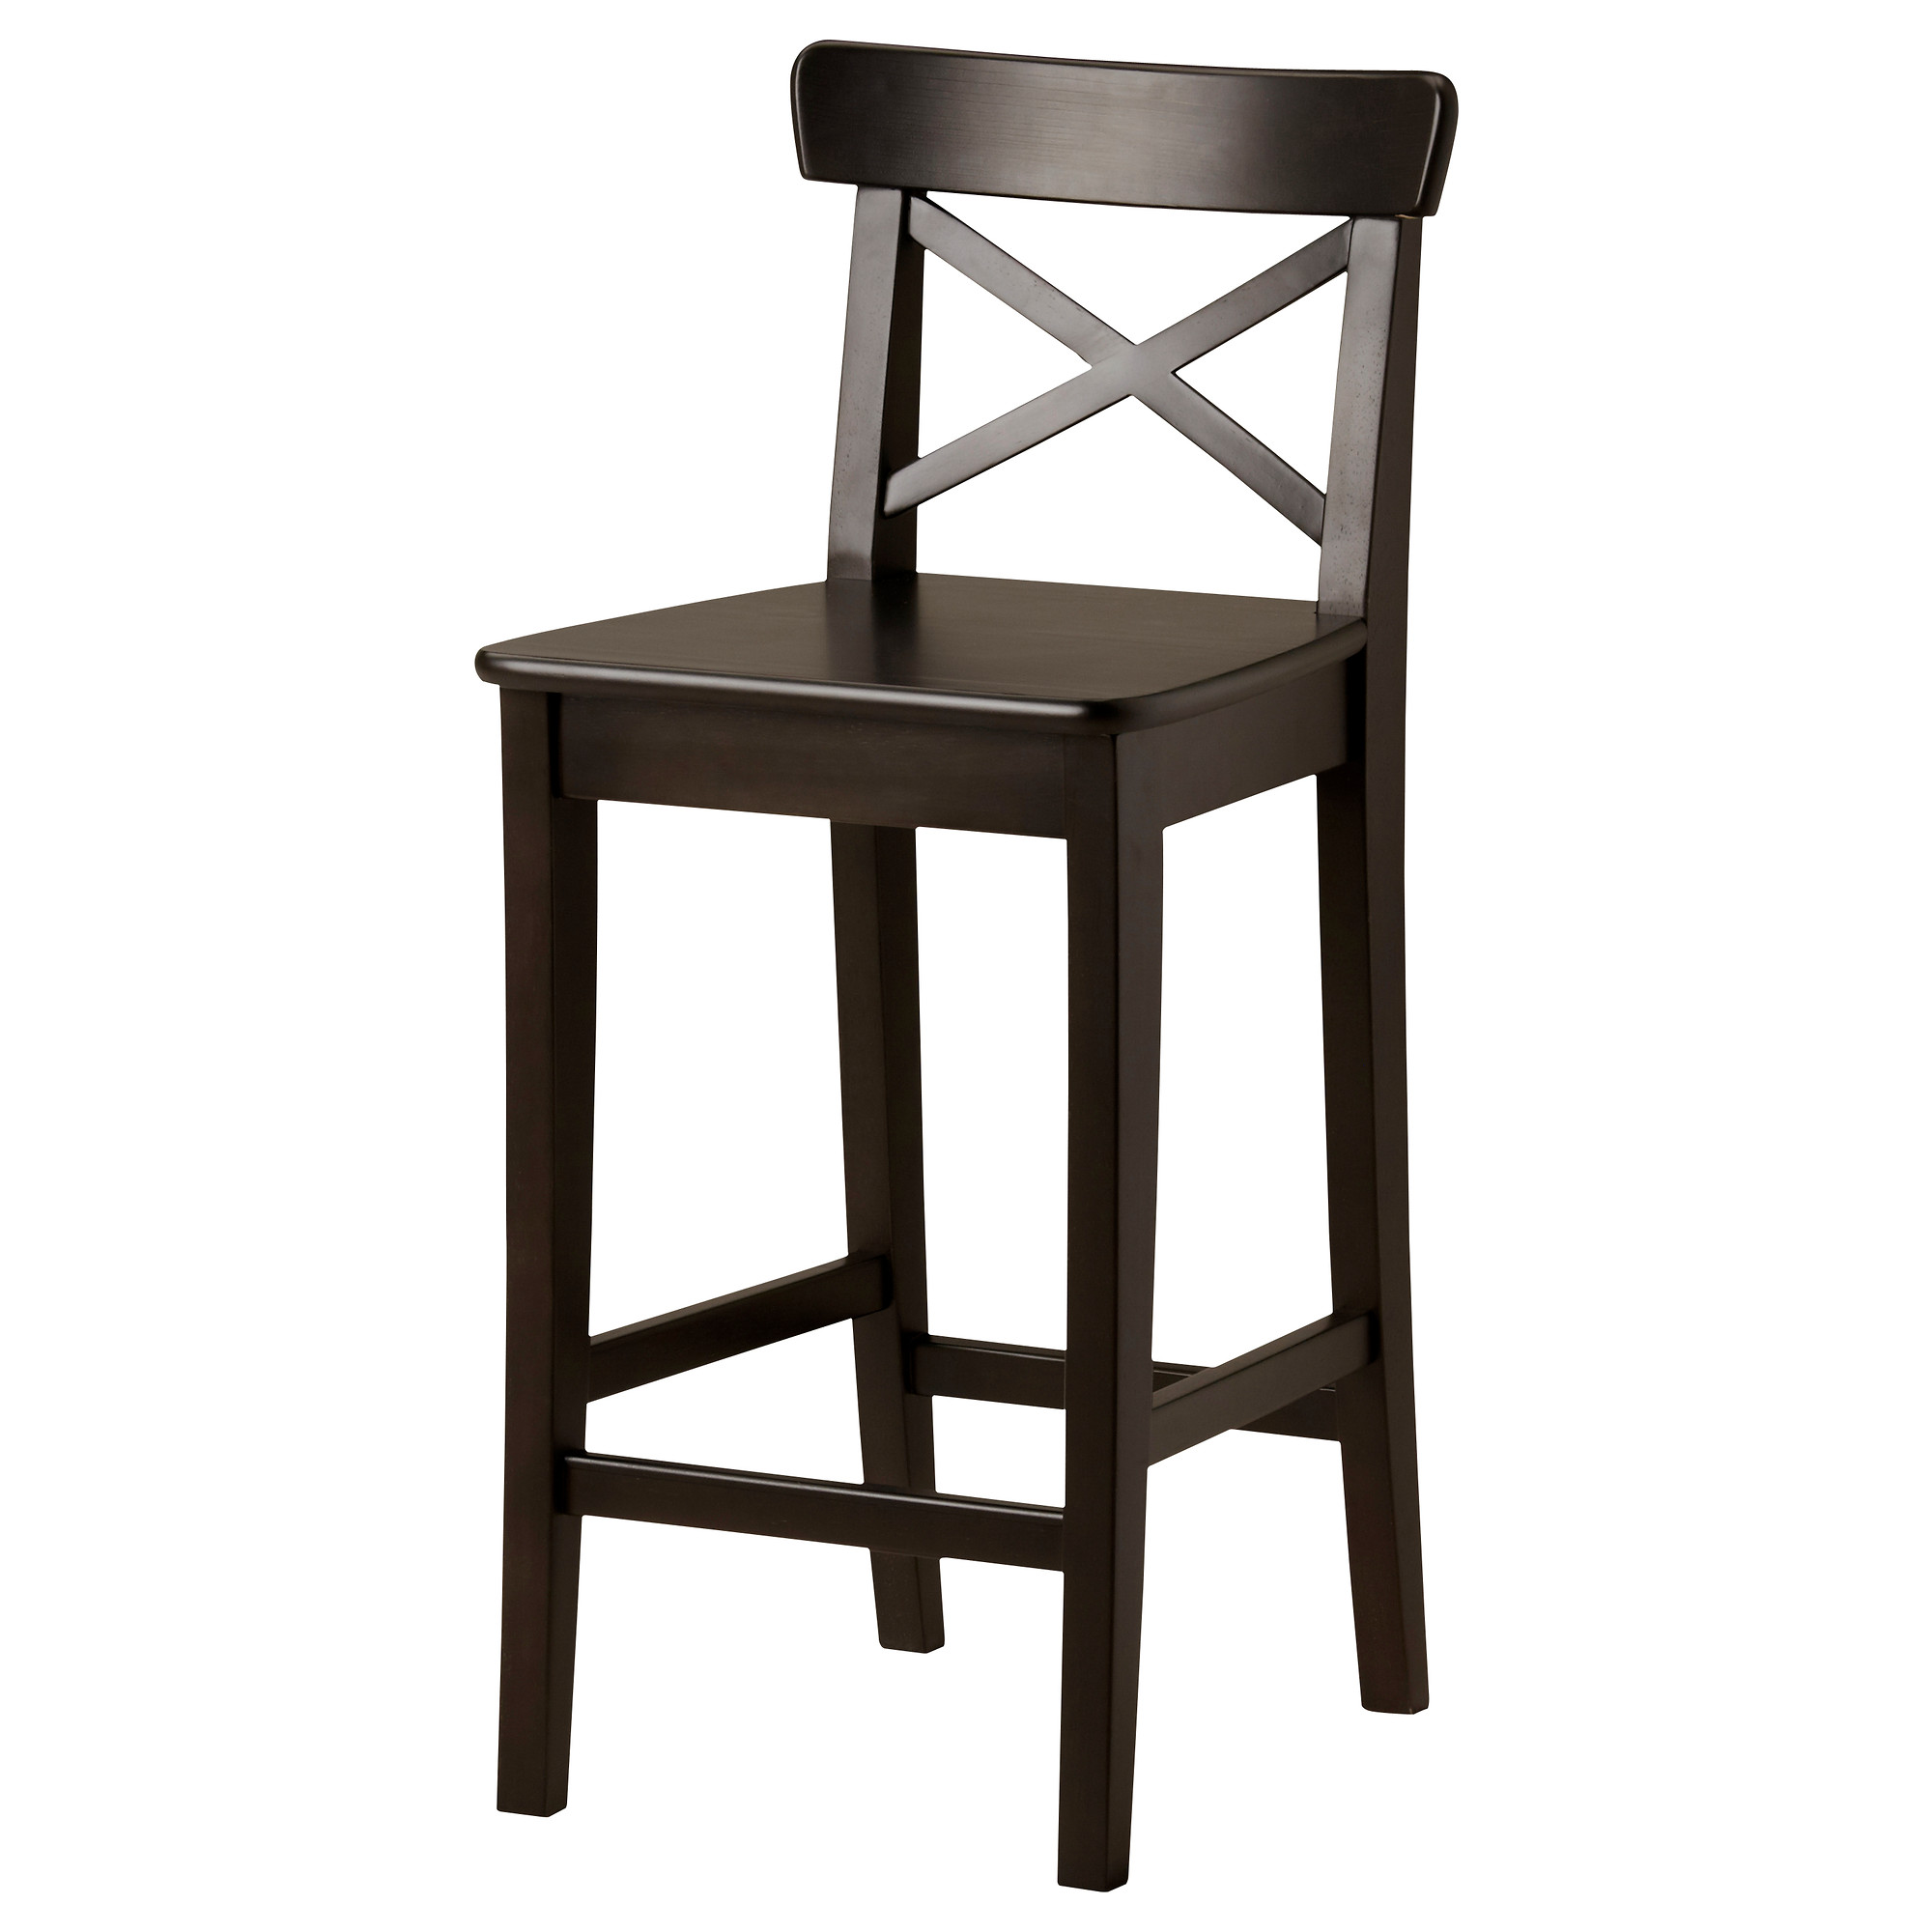 Cool Bar Stools Design Gives Perfection Meeting Urban  : glossy brown wooden bar stool design with cross backrest idea and flat hard seating and tall legs with footrests from homesfeed.com size 2000 x 2000 jpeg 218kB